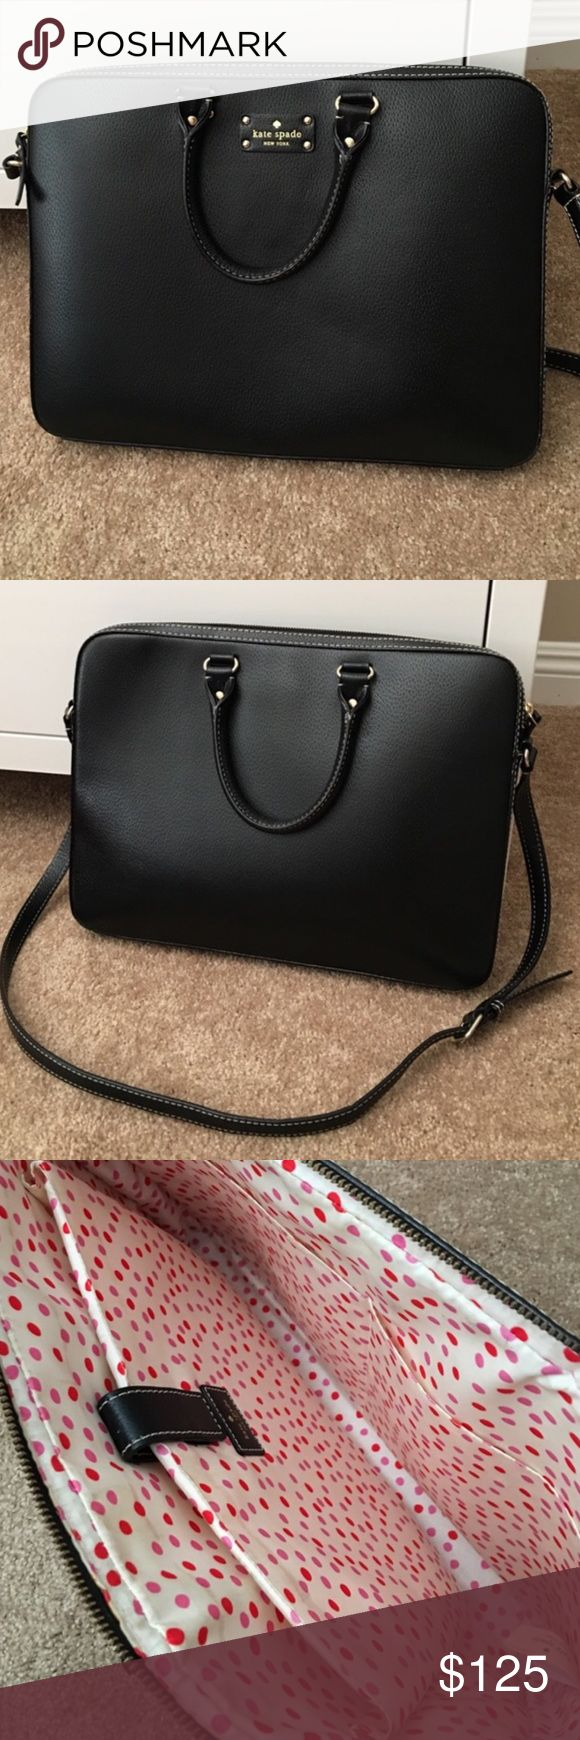 "Kate Spade Black Laptop Bag Like new! Used minimally. Minor stain on the inside (please see last picture). It fits my 15"" MacBook Pro. Also has a pocket inside. kate spade Bags Laptop Bags"